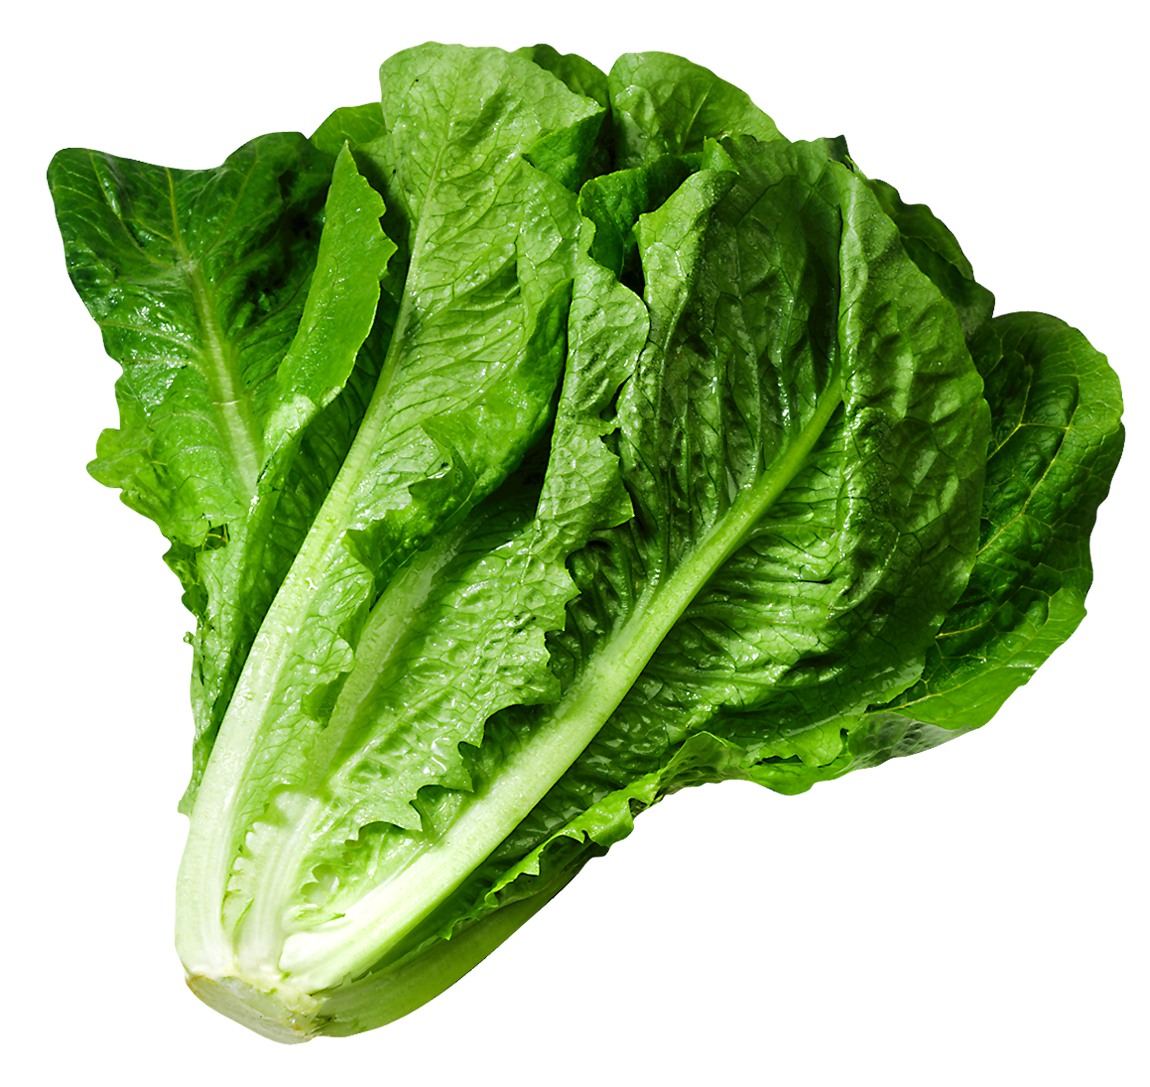 Lettuce clipart 20 free Cliparts | Download images on ...